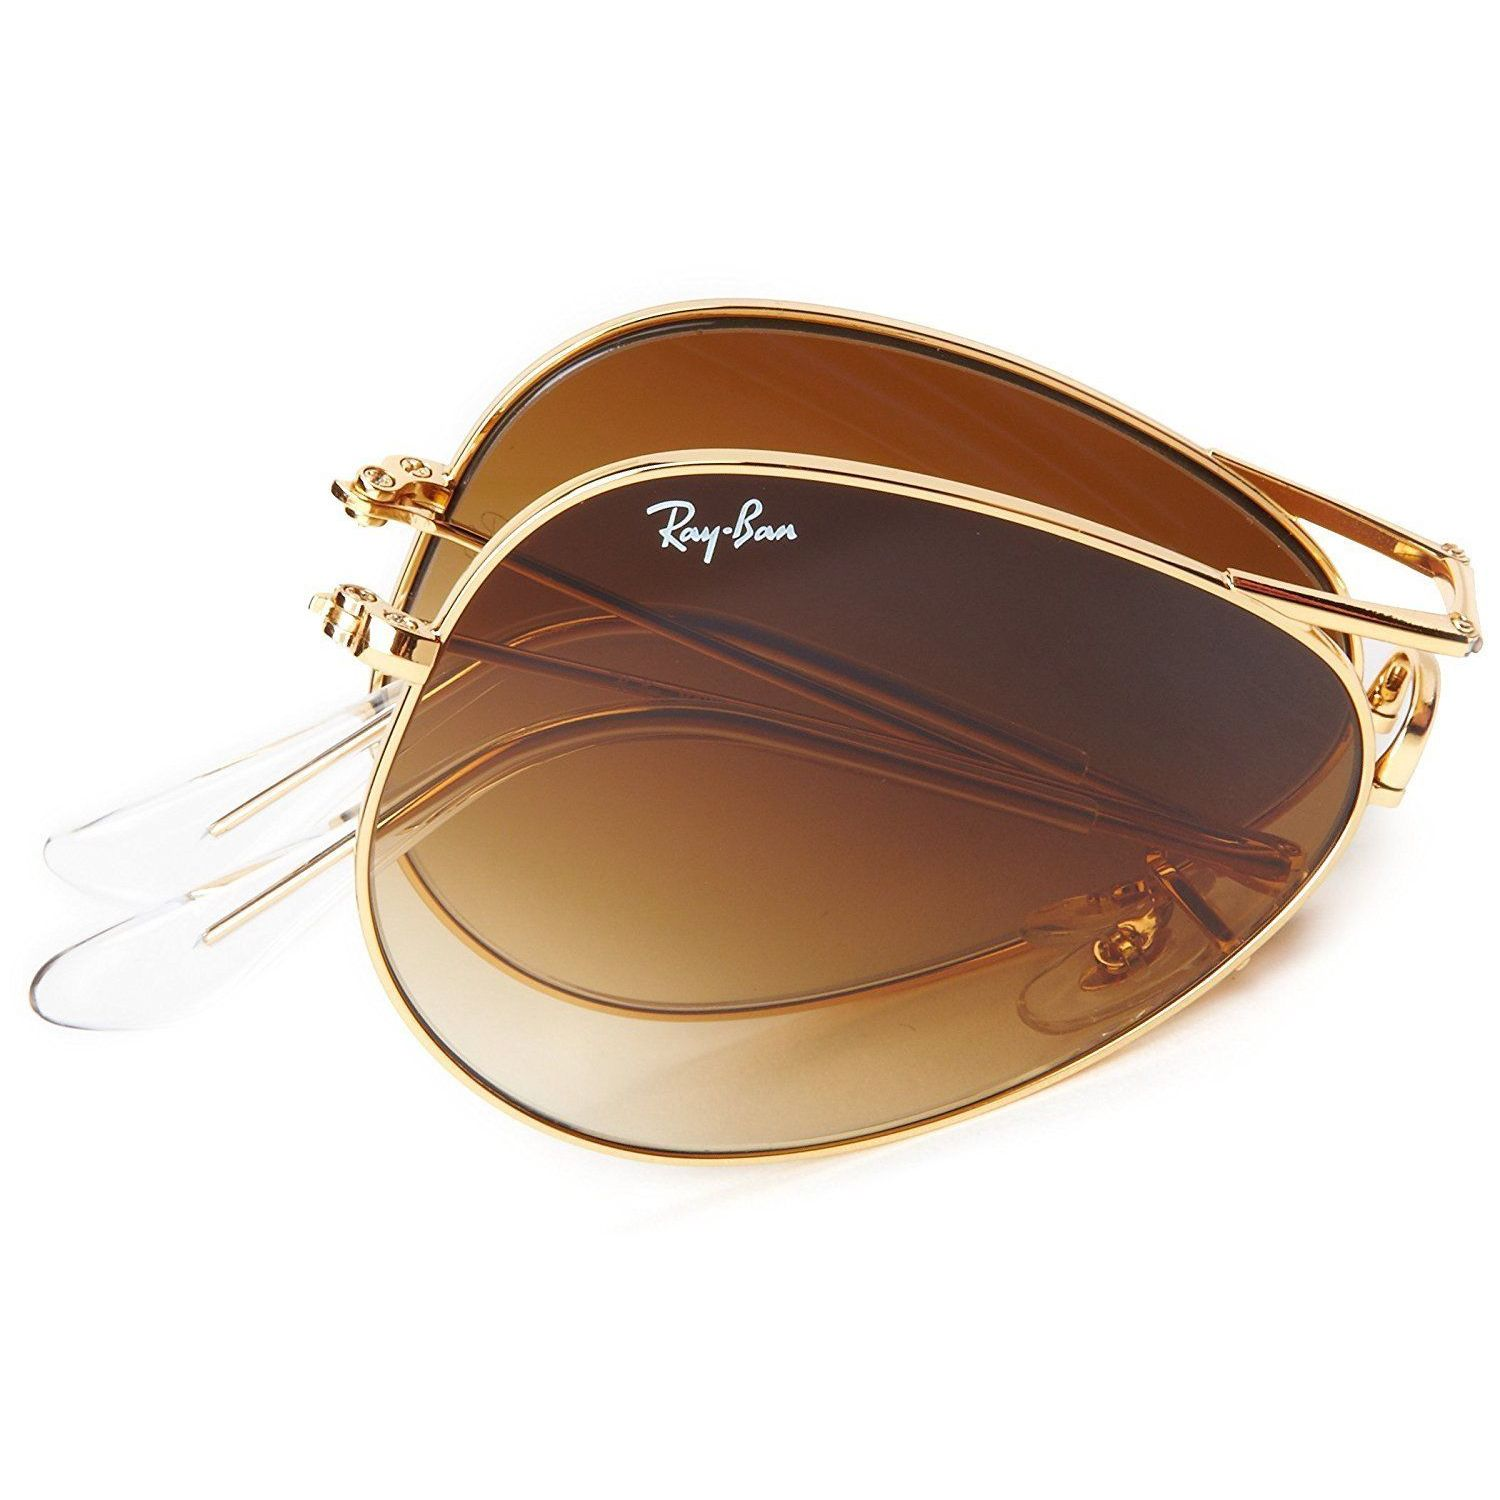 dbeb99af5a Shop Ray-Ban RB3479 001 51 Unisex Aviator Folding Gold Frame Brown Gradient  Lens Sunglasses - Free Shipping Today - Overstock - 15002993